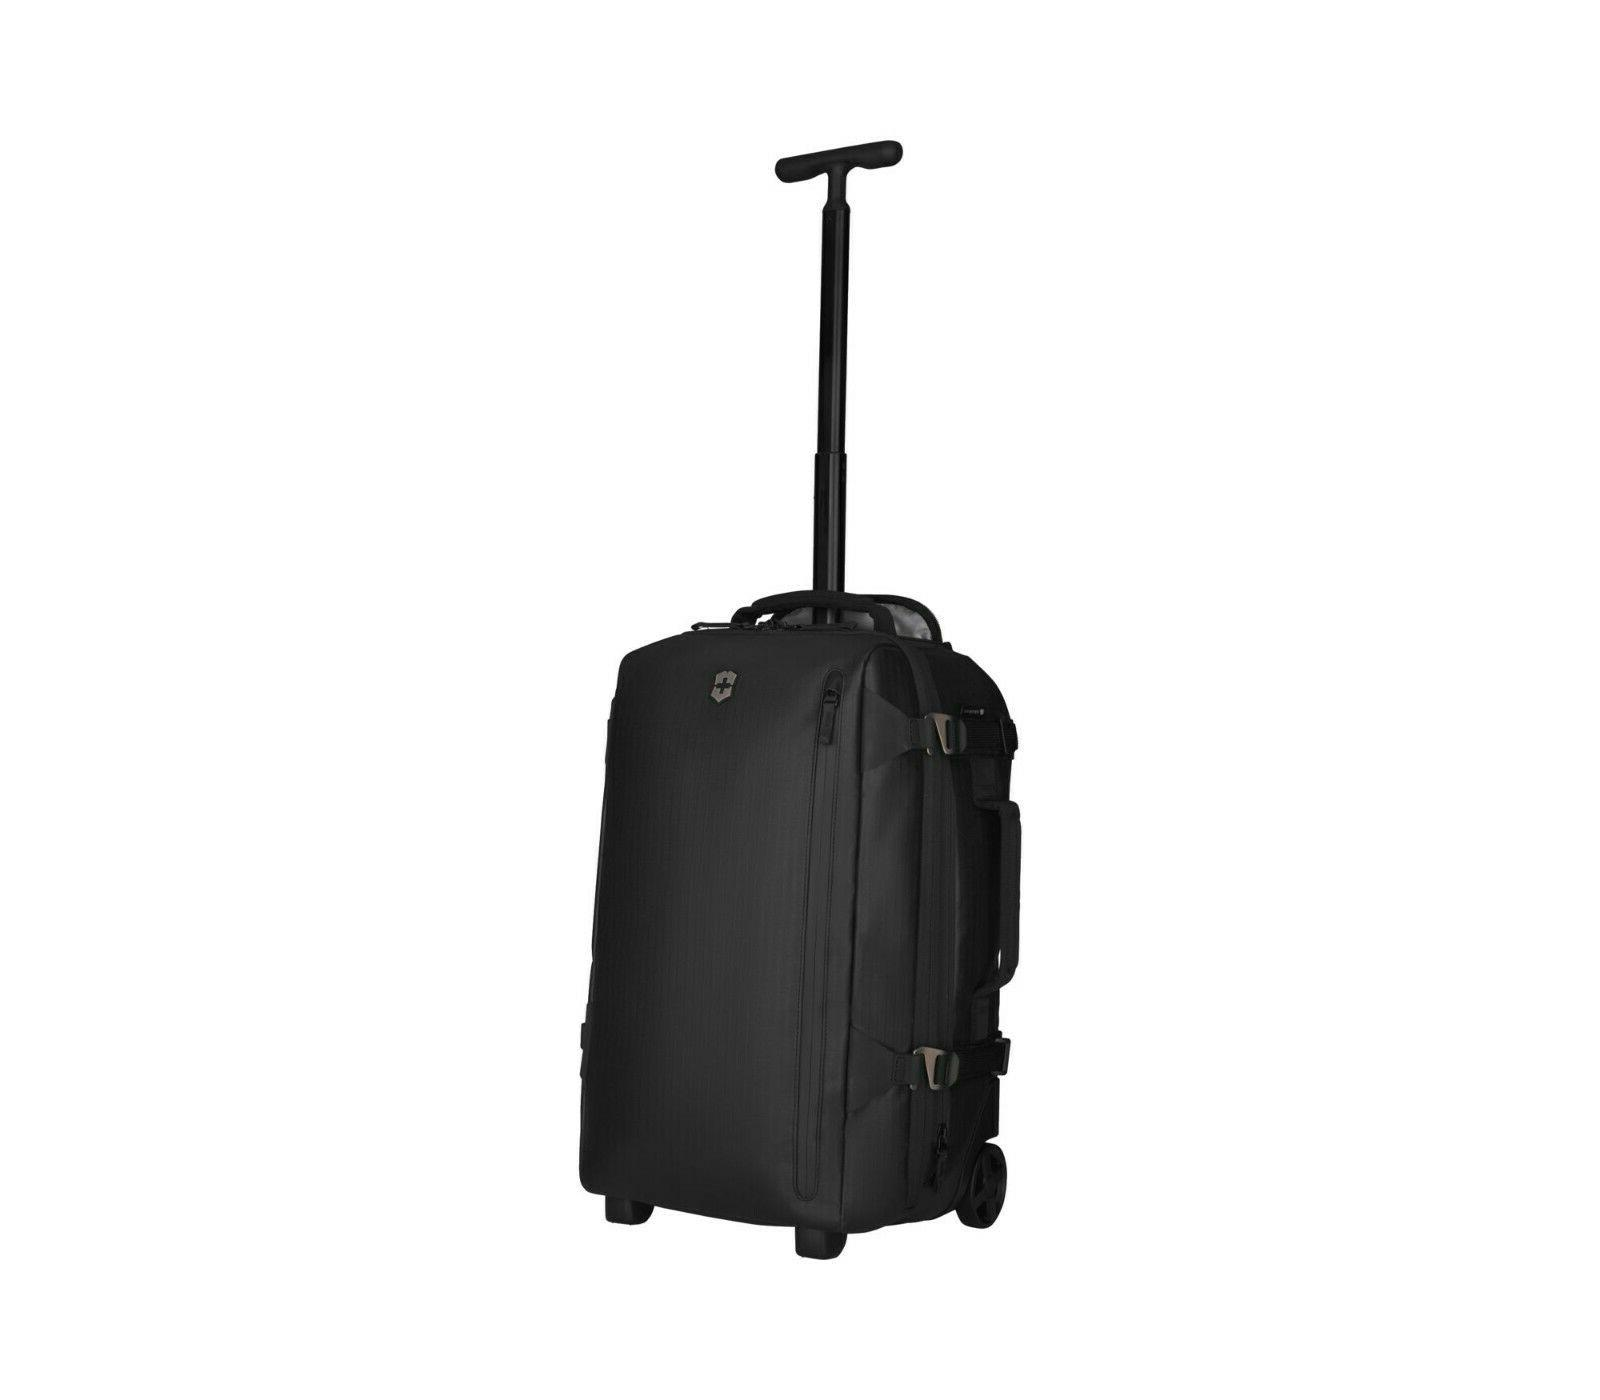 vx touring coated canvas carry on